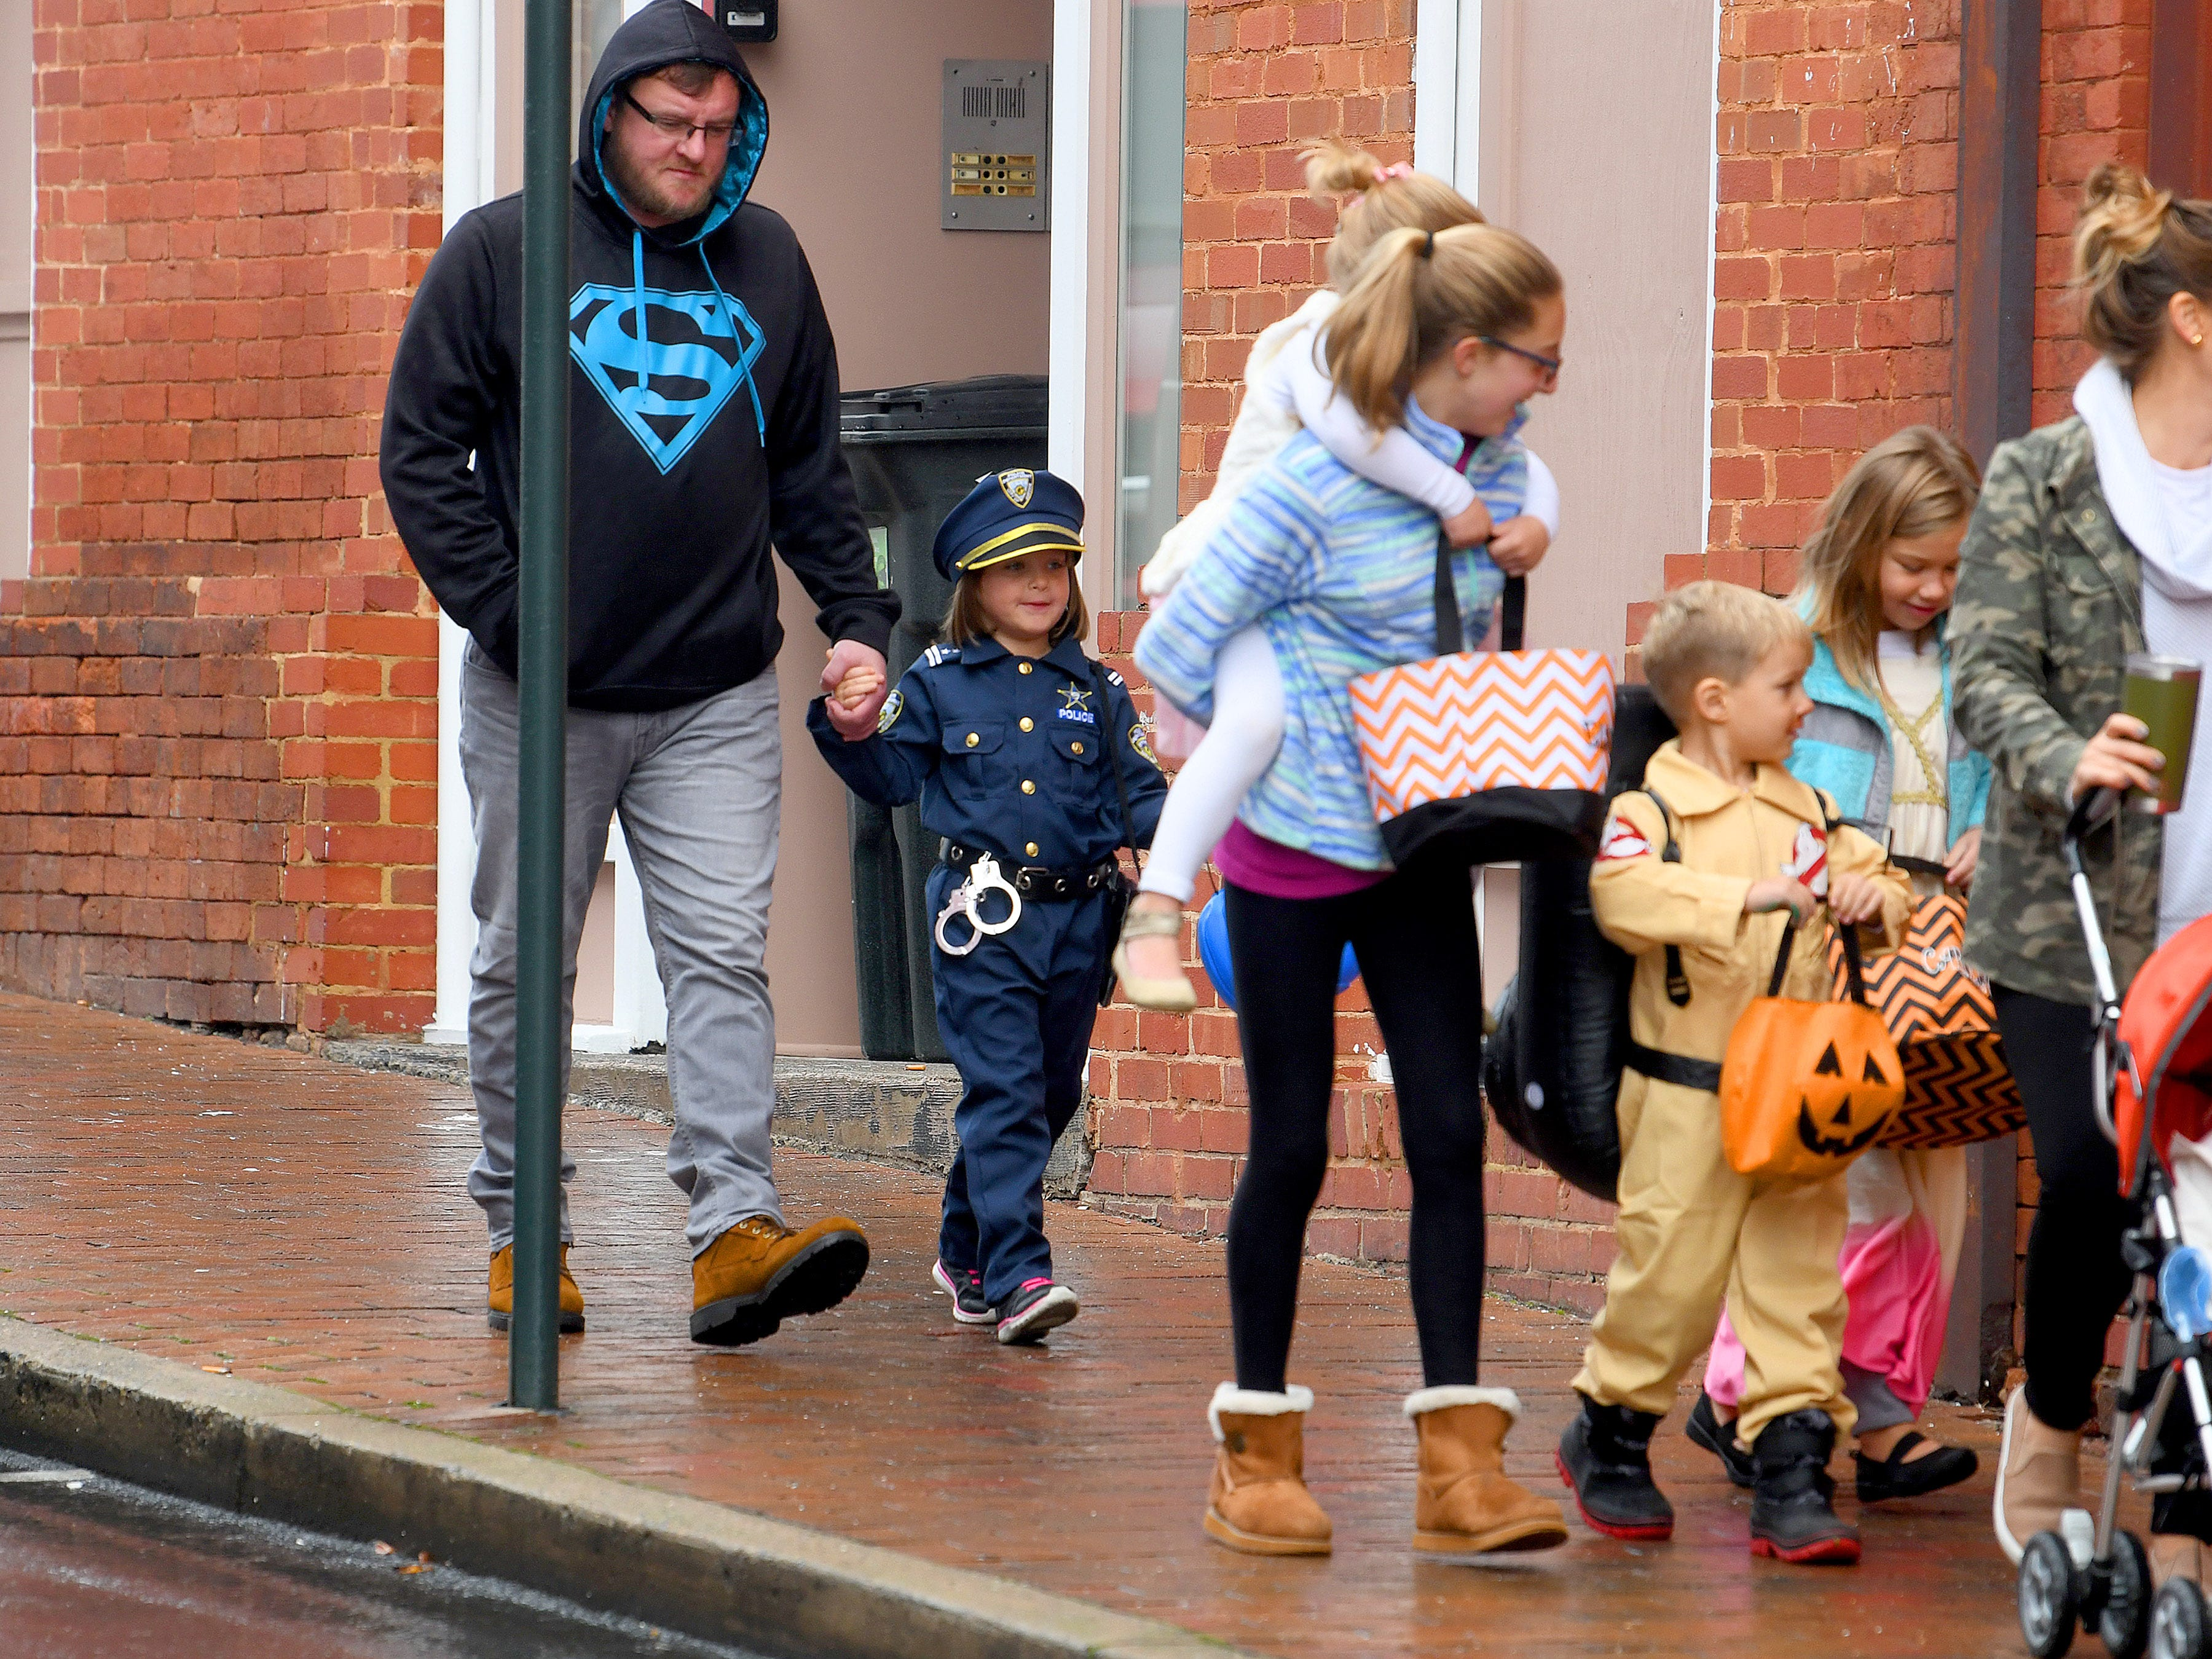 A young police officer holds an adult hand while trick-or-treating in downtown Staunton on Saturday, Oct. 27, 2018.